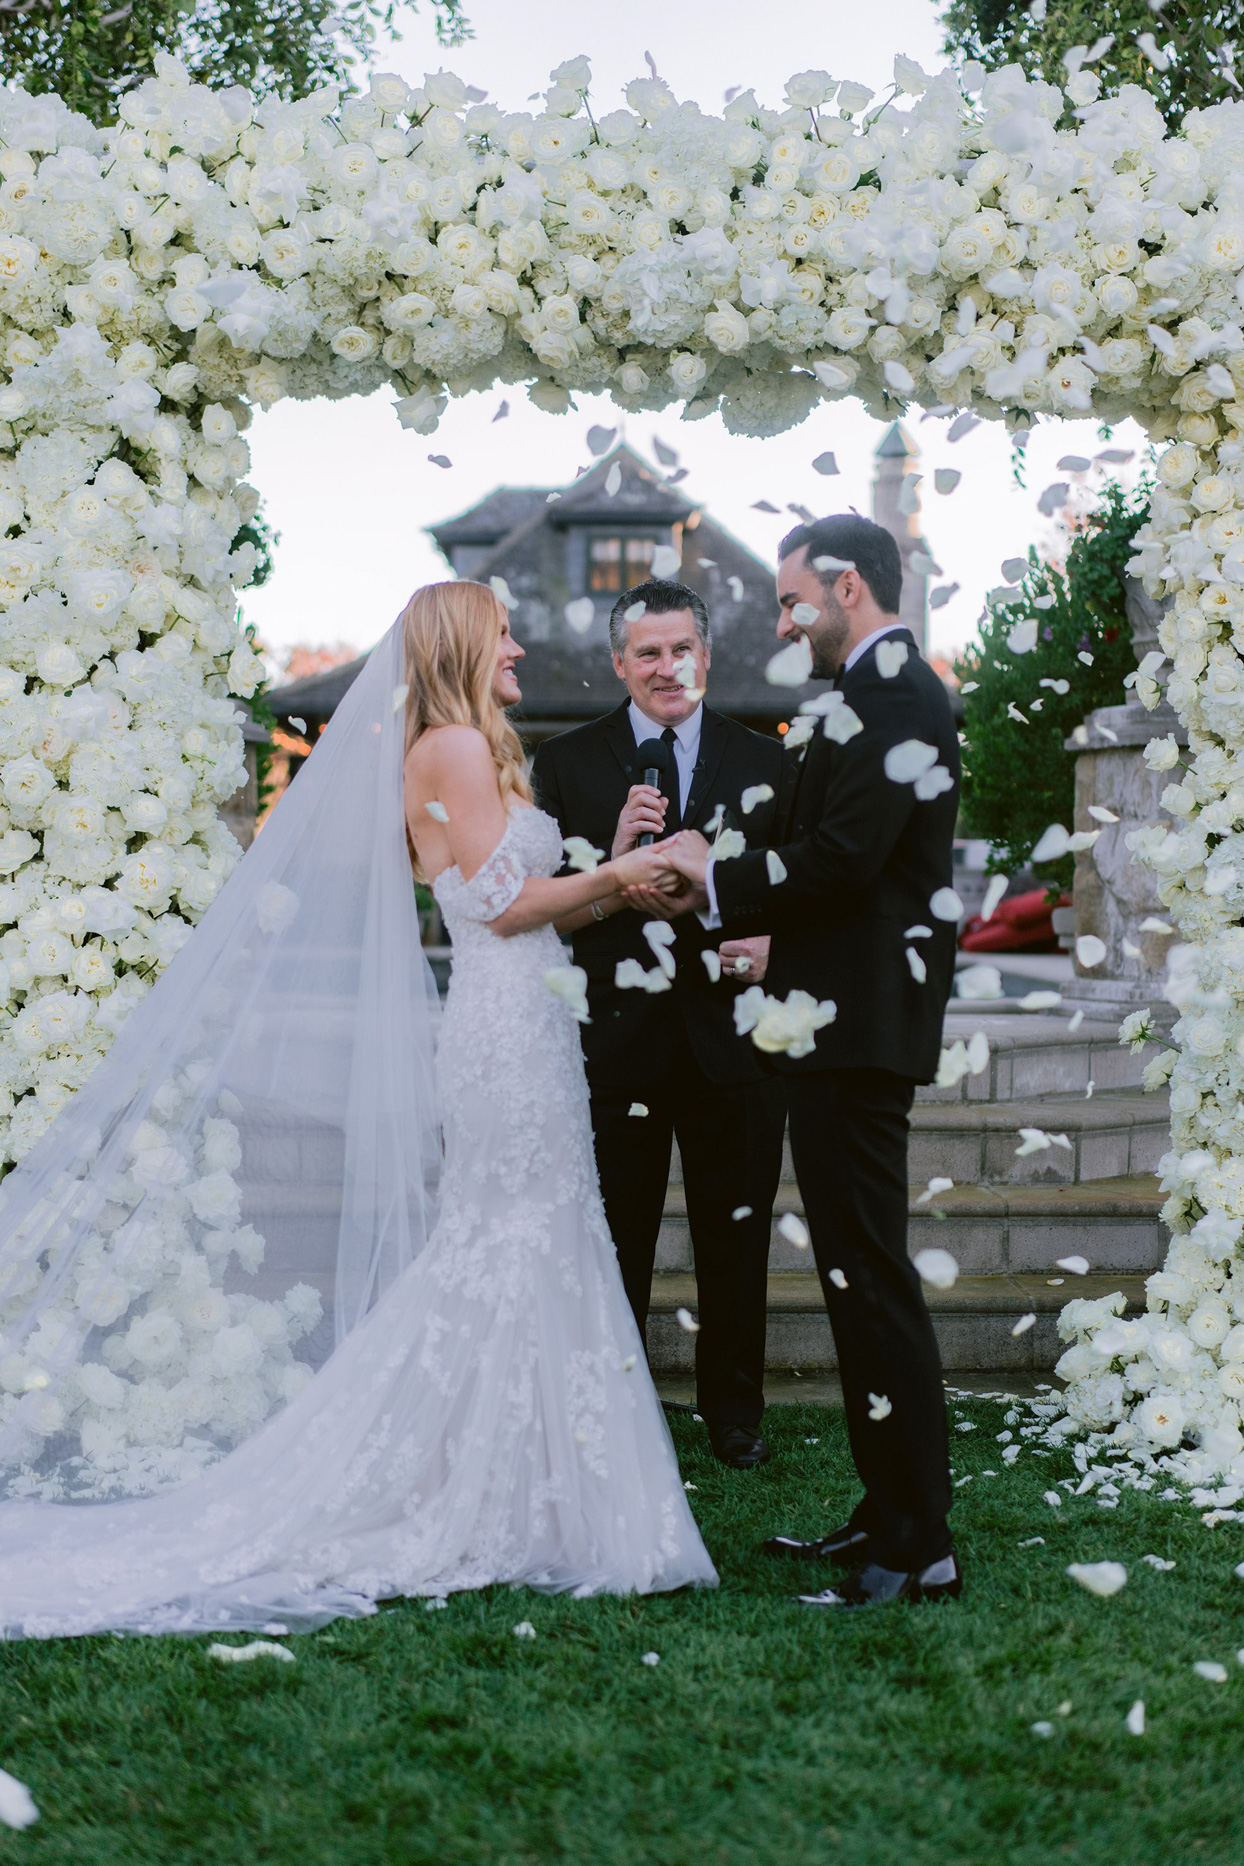 bride and groom being showered in white petals during wedding ceremony